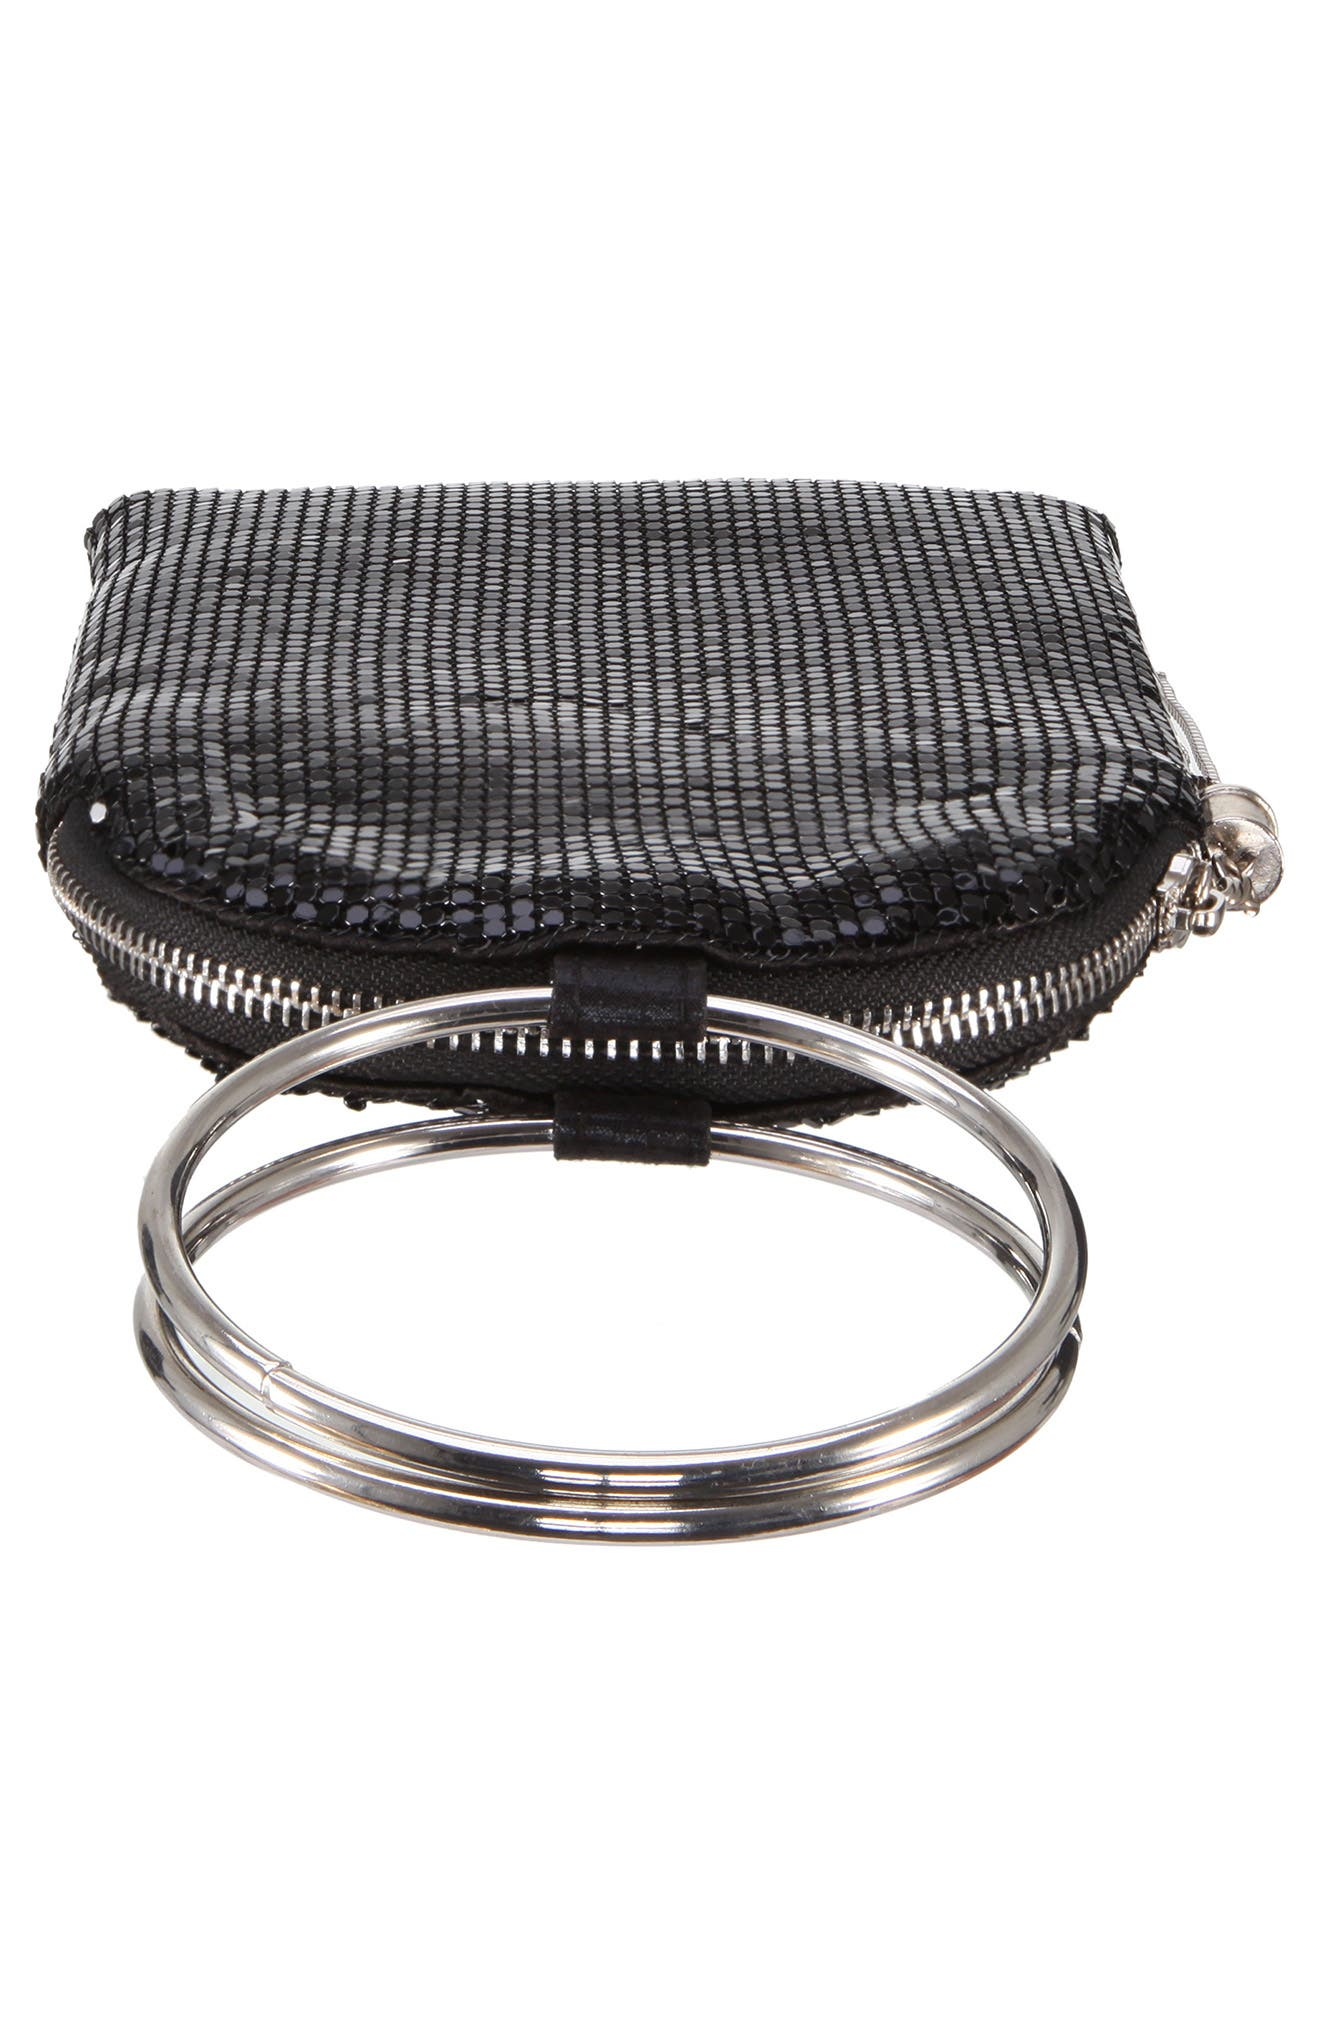 Metallic Mesh Handbag,                             Alternate thumbnail 5, color,                             BLACK